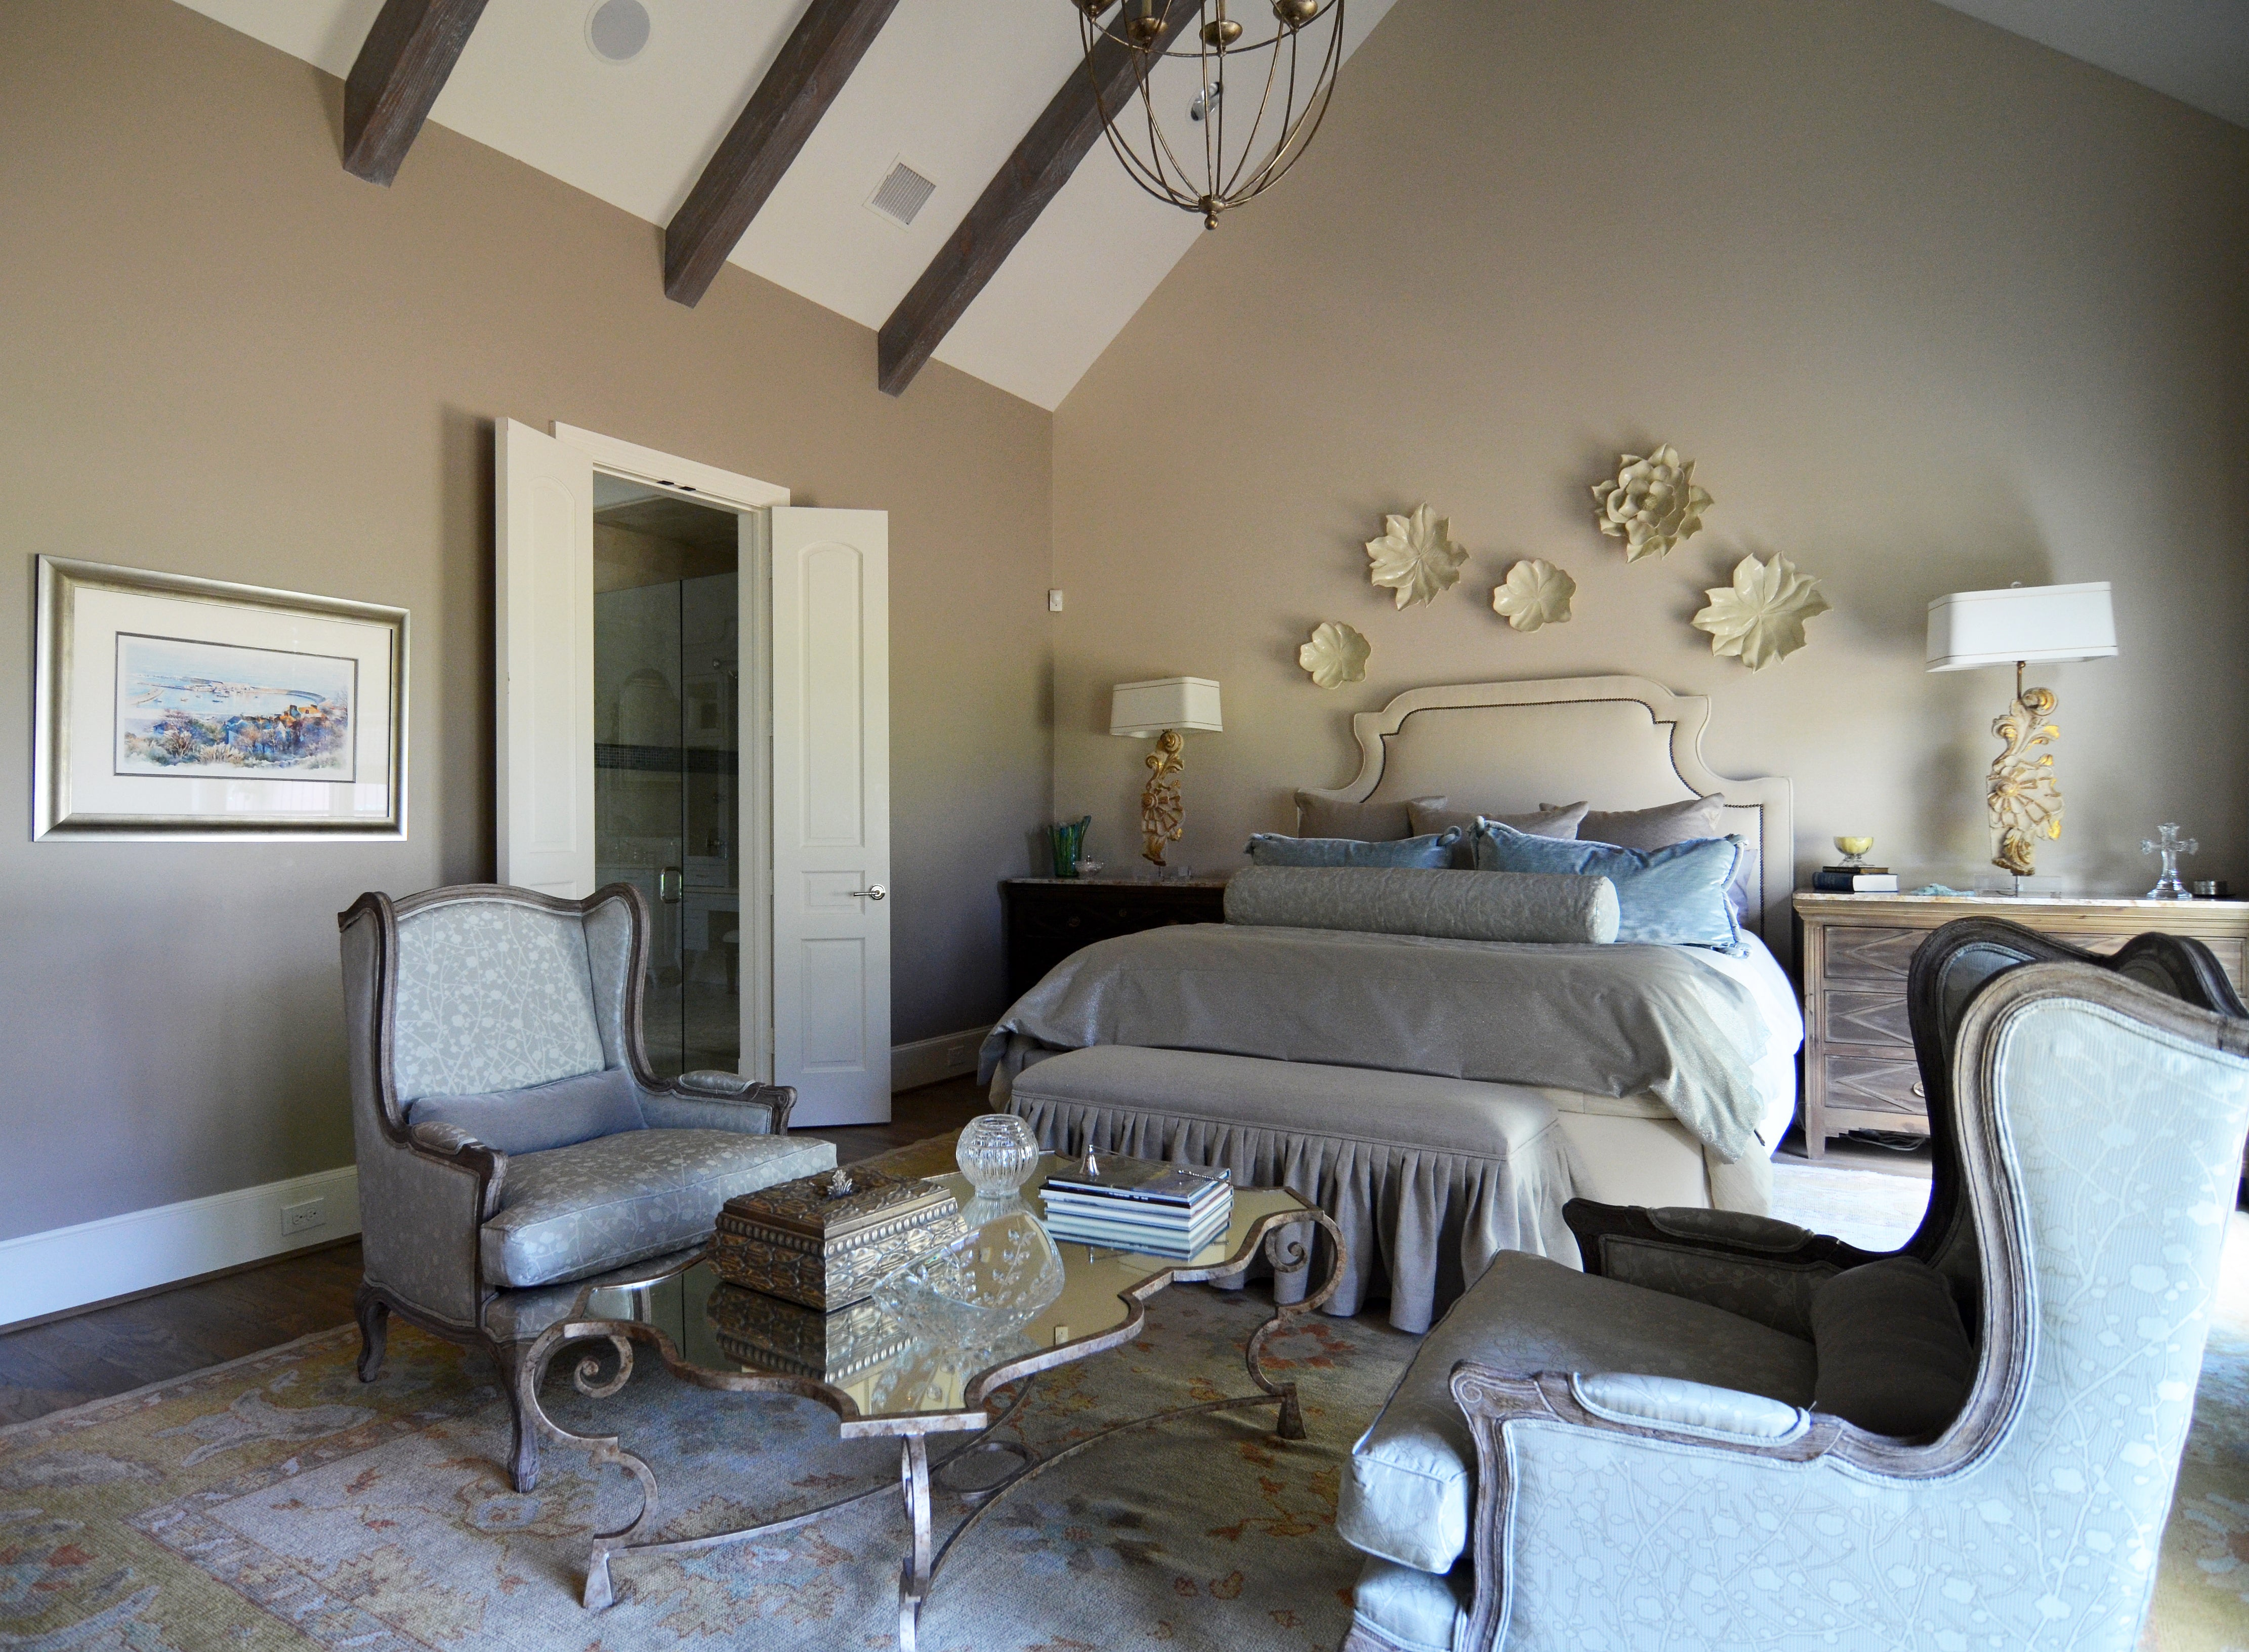 Classicly decorated bedroom with accents of pale blue and gold